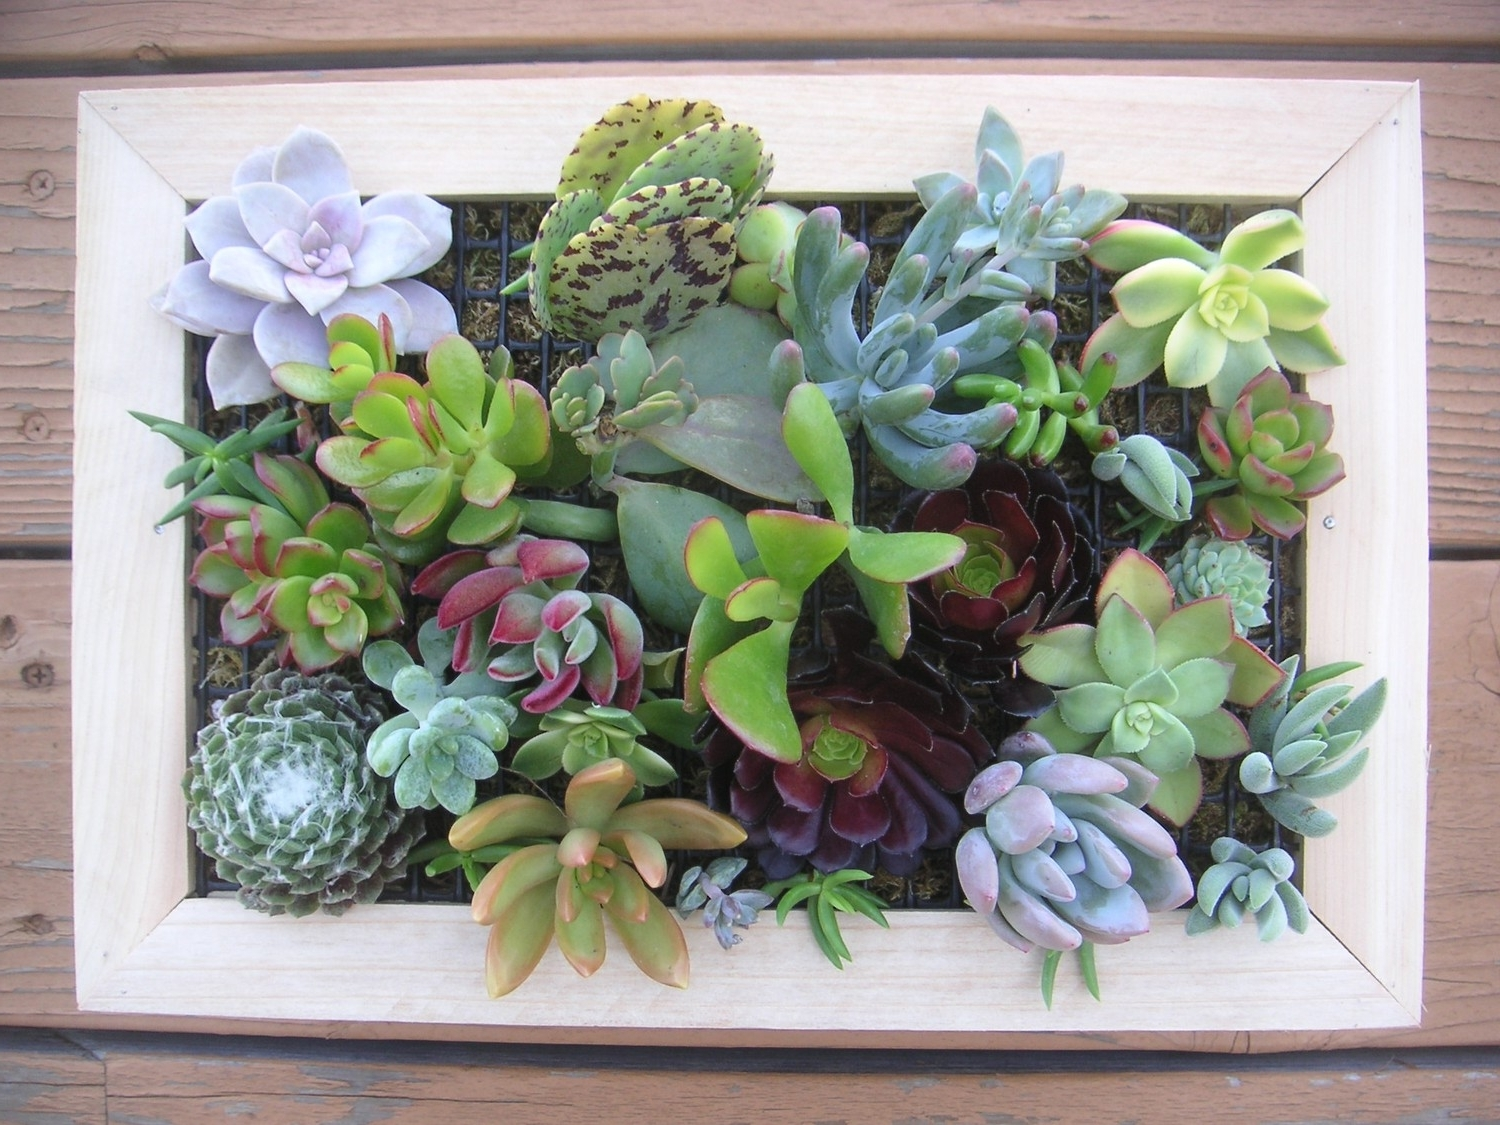 97 Living Wall Art Succulents An Old Picture Frame In Living Wall Throughout Popular Living Wall Art (Gallery 14 of 20)